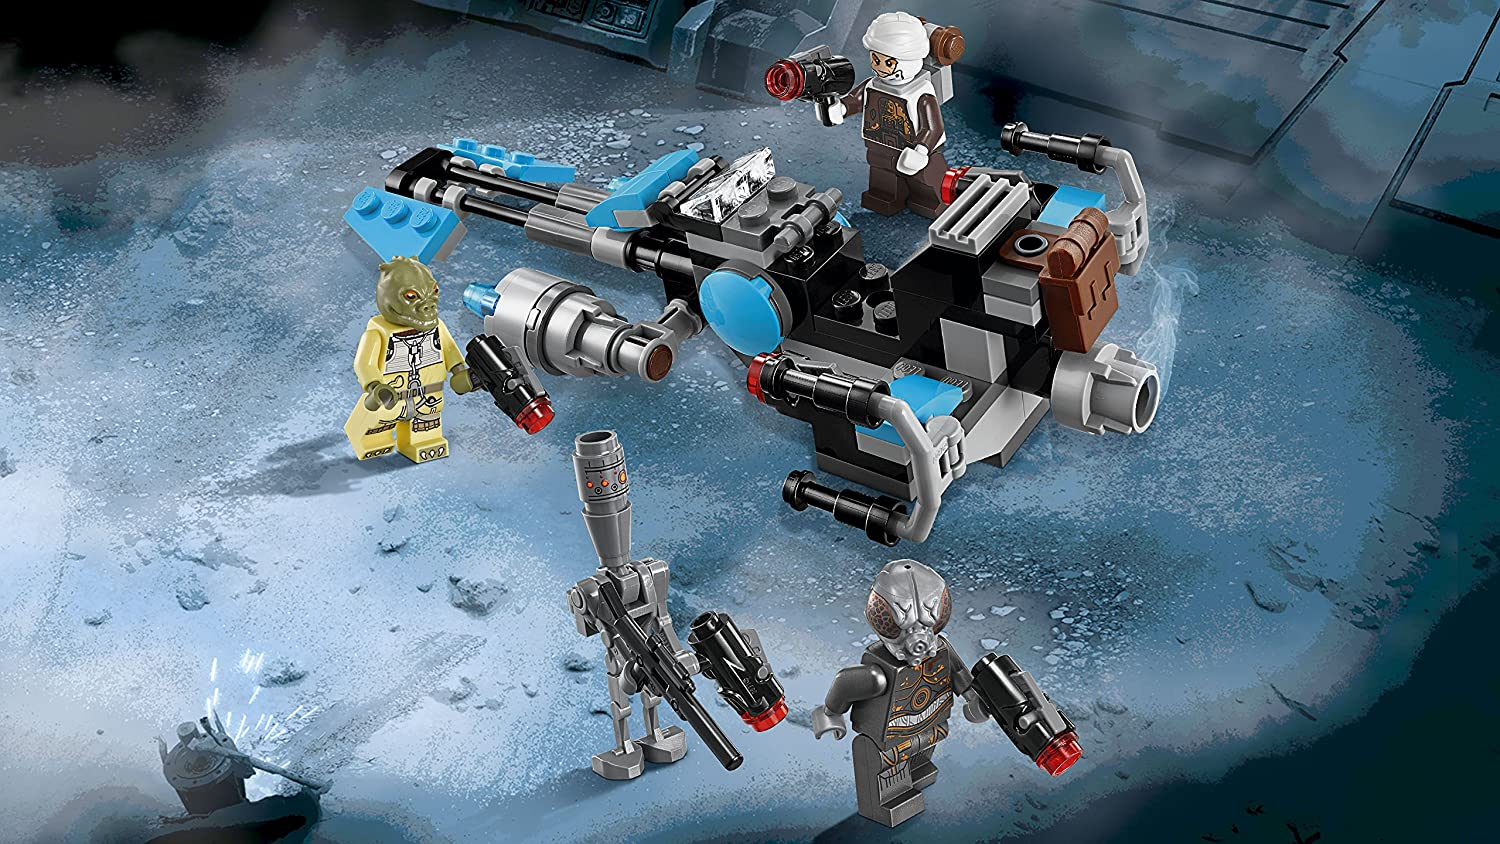 LEGO Star Wars Battle Packs Bounty Hunter Speeder Bike Battle Pack